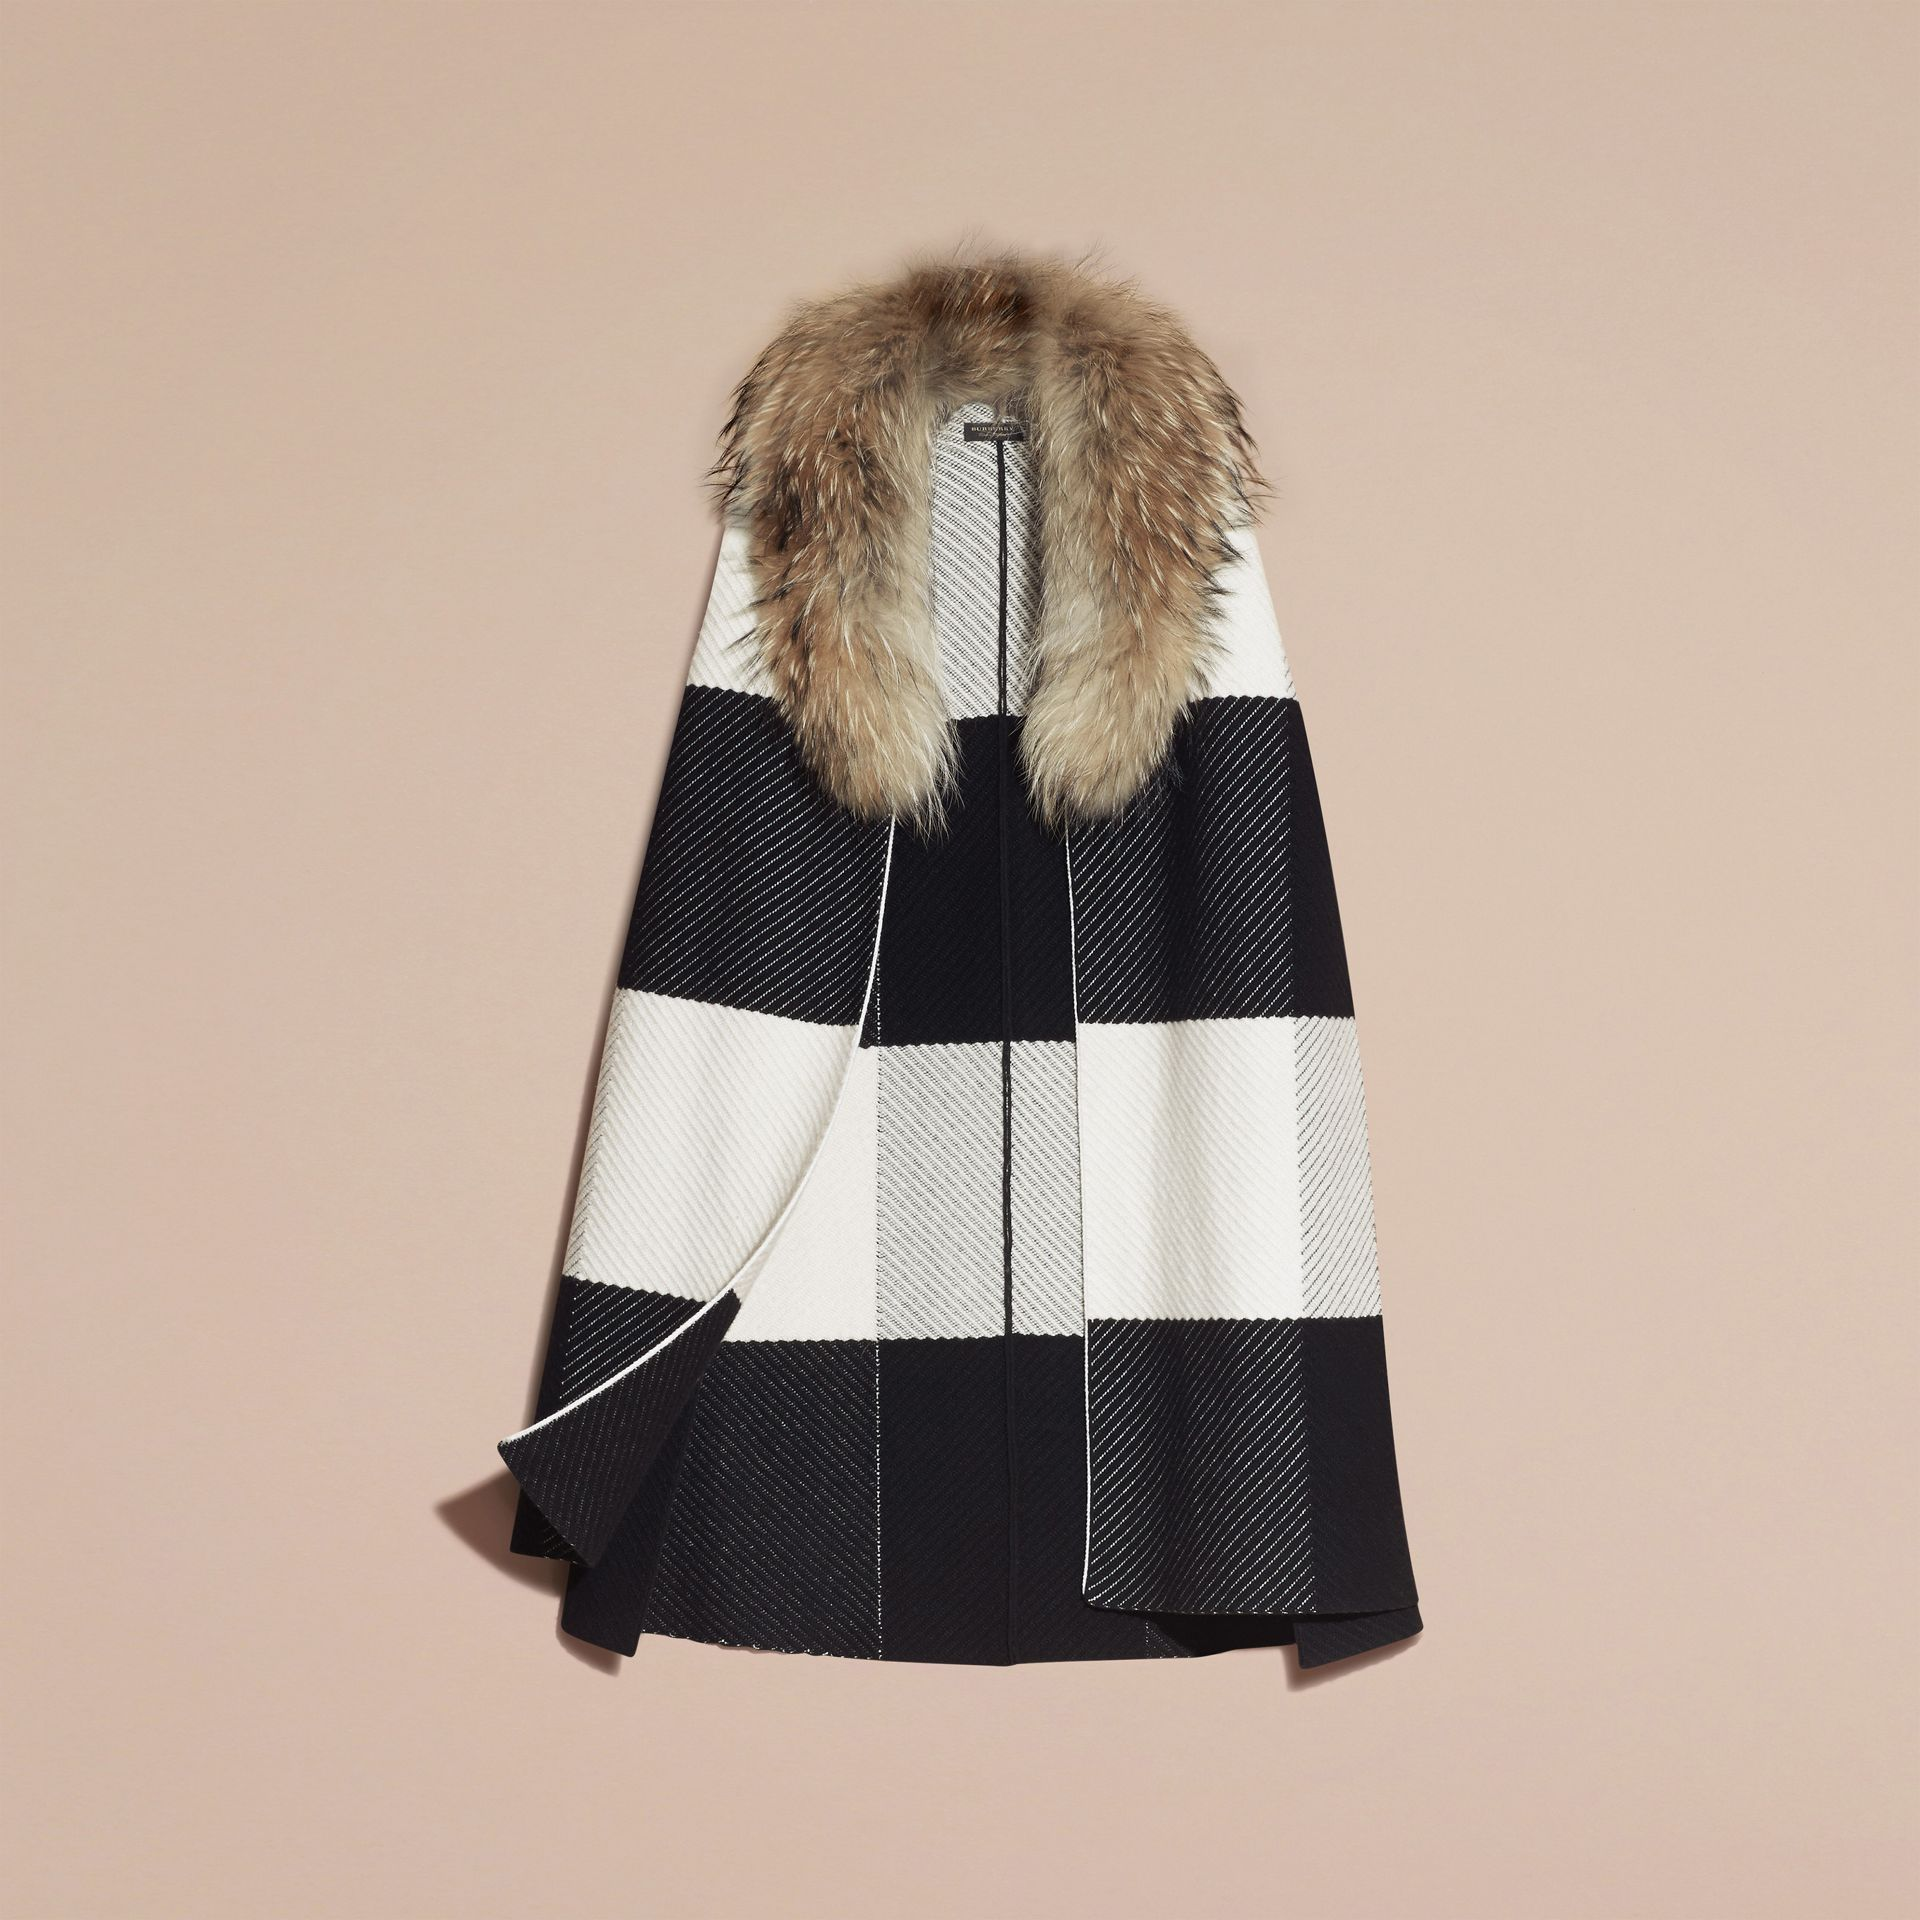 Black/white Check Cashmere Wool Blend Poncho with Raccoon Collar - gallery image 4